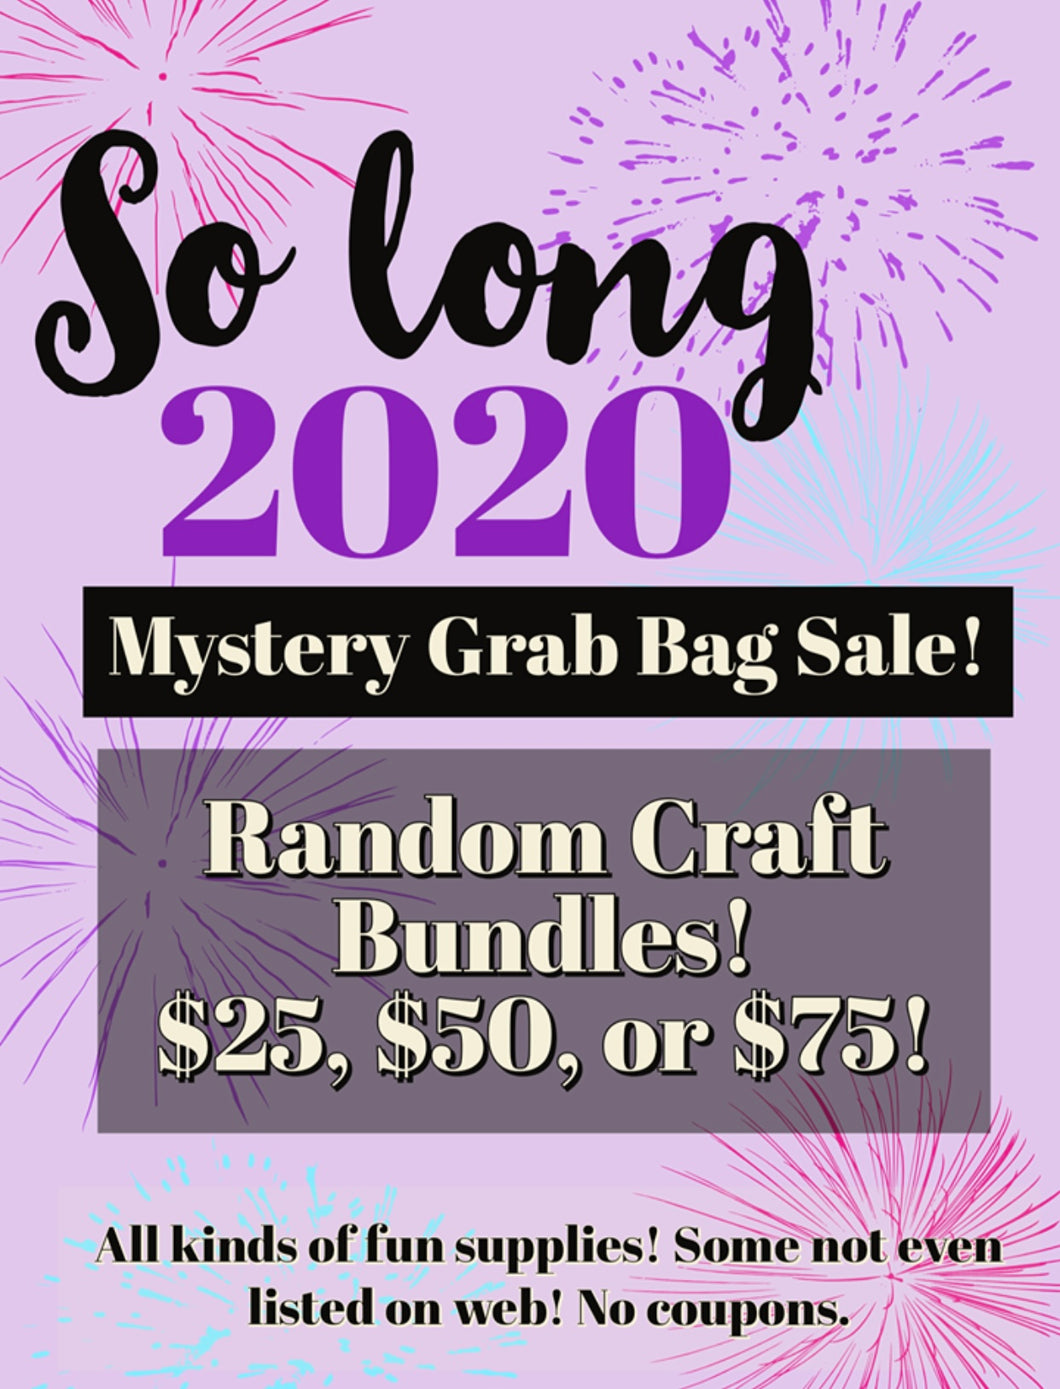 So Long 2020 Mystery Craft Bundle $75 ($135 value)